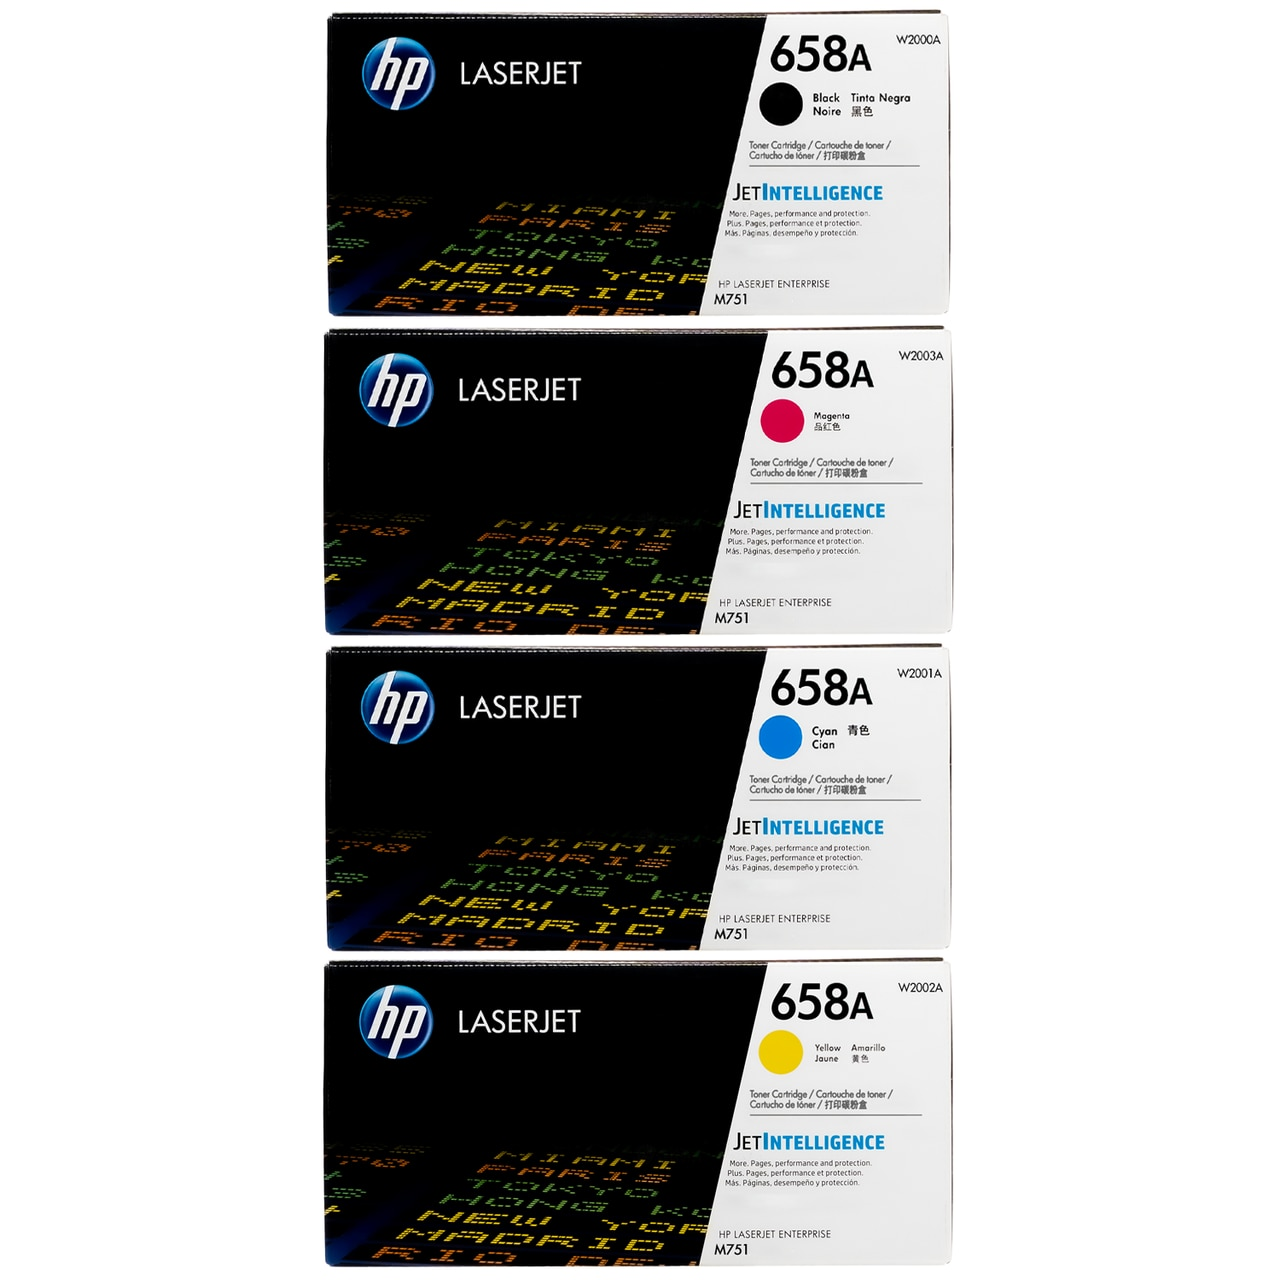 Original HP 658A SET | W2000A W2001A W2002A W2003A | LaserJet Toner Cartridges - Black, Cyan, Magenta, Yellow